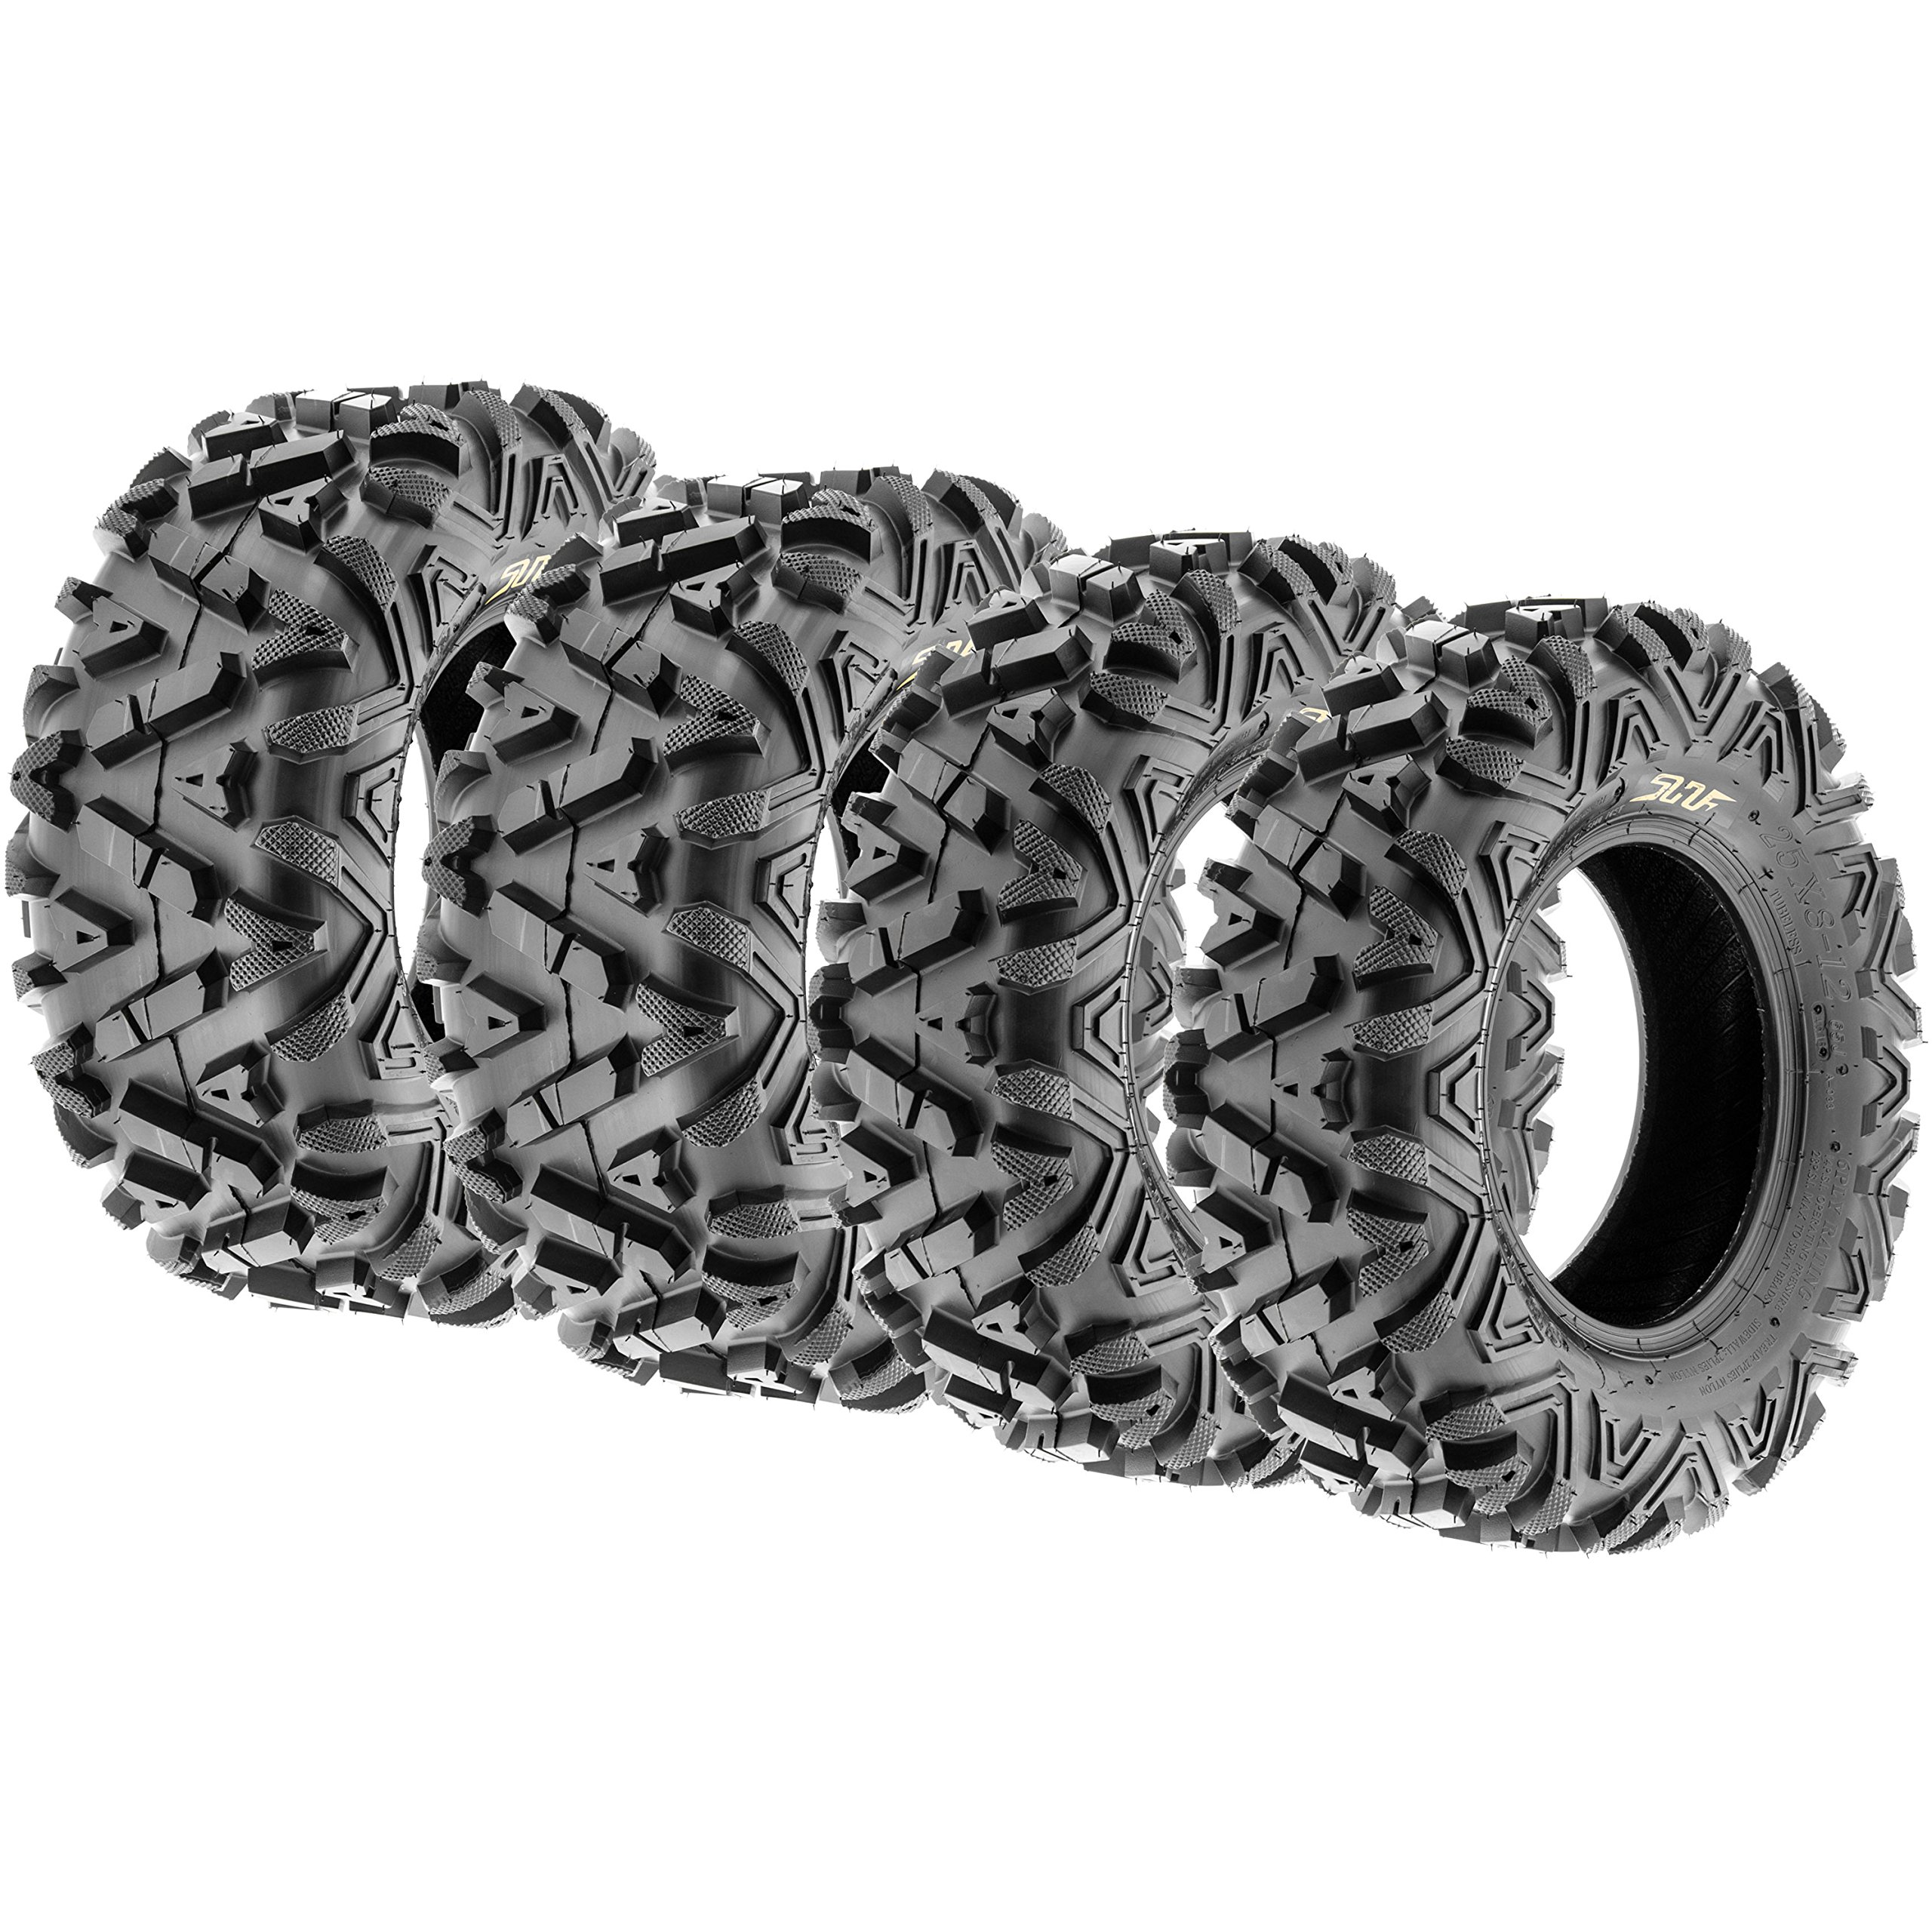 SunF Power.I 25 inch ATV UTV all-terrain Tires 25x8-12 & 25x11-12, 6 PR Front & Rear Set of 4 A033, Tubeless by SUNF (Image #1)